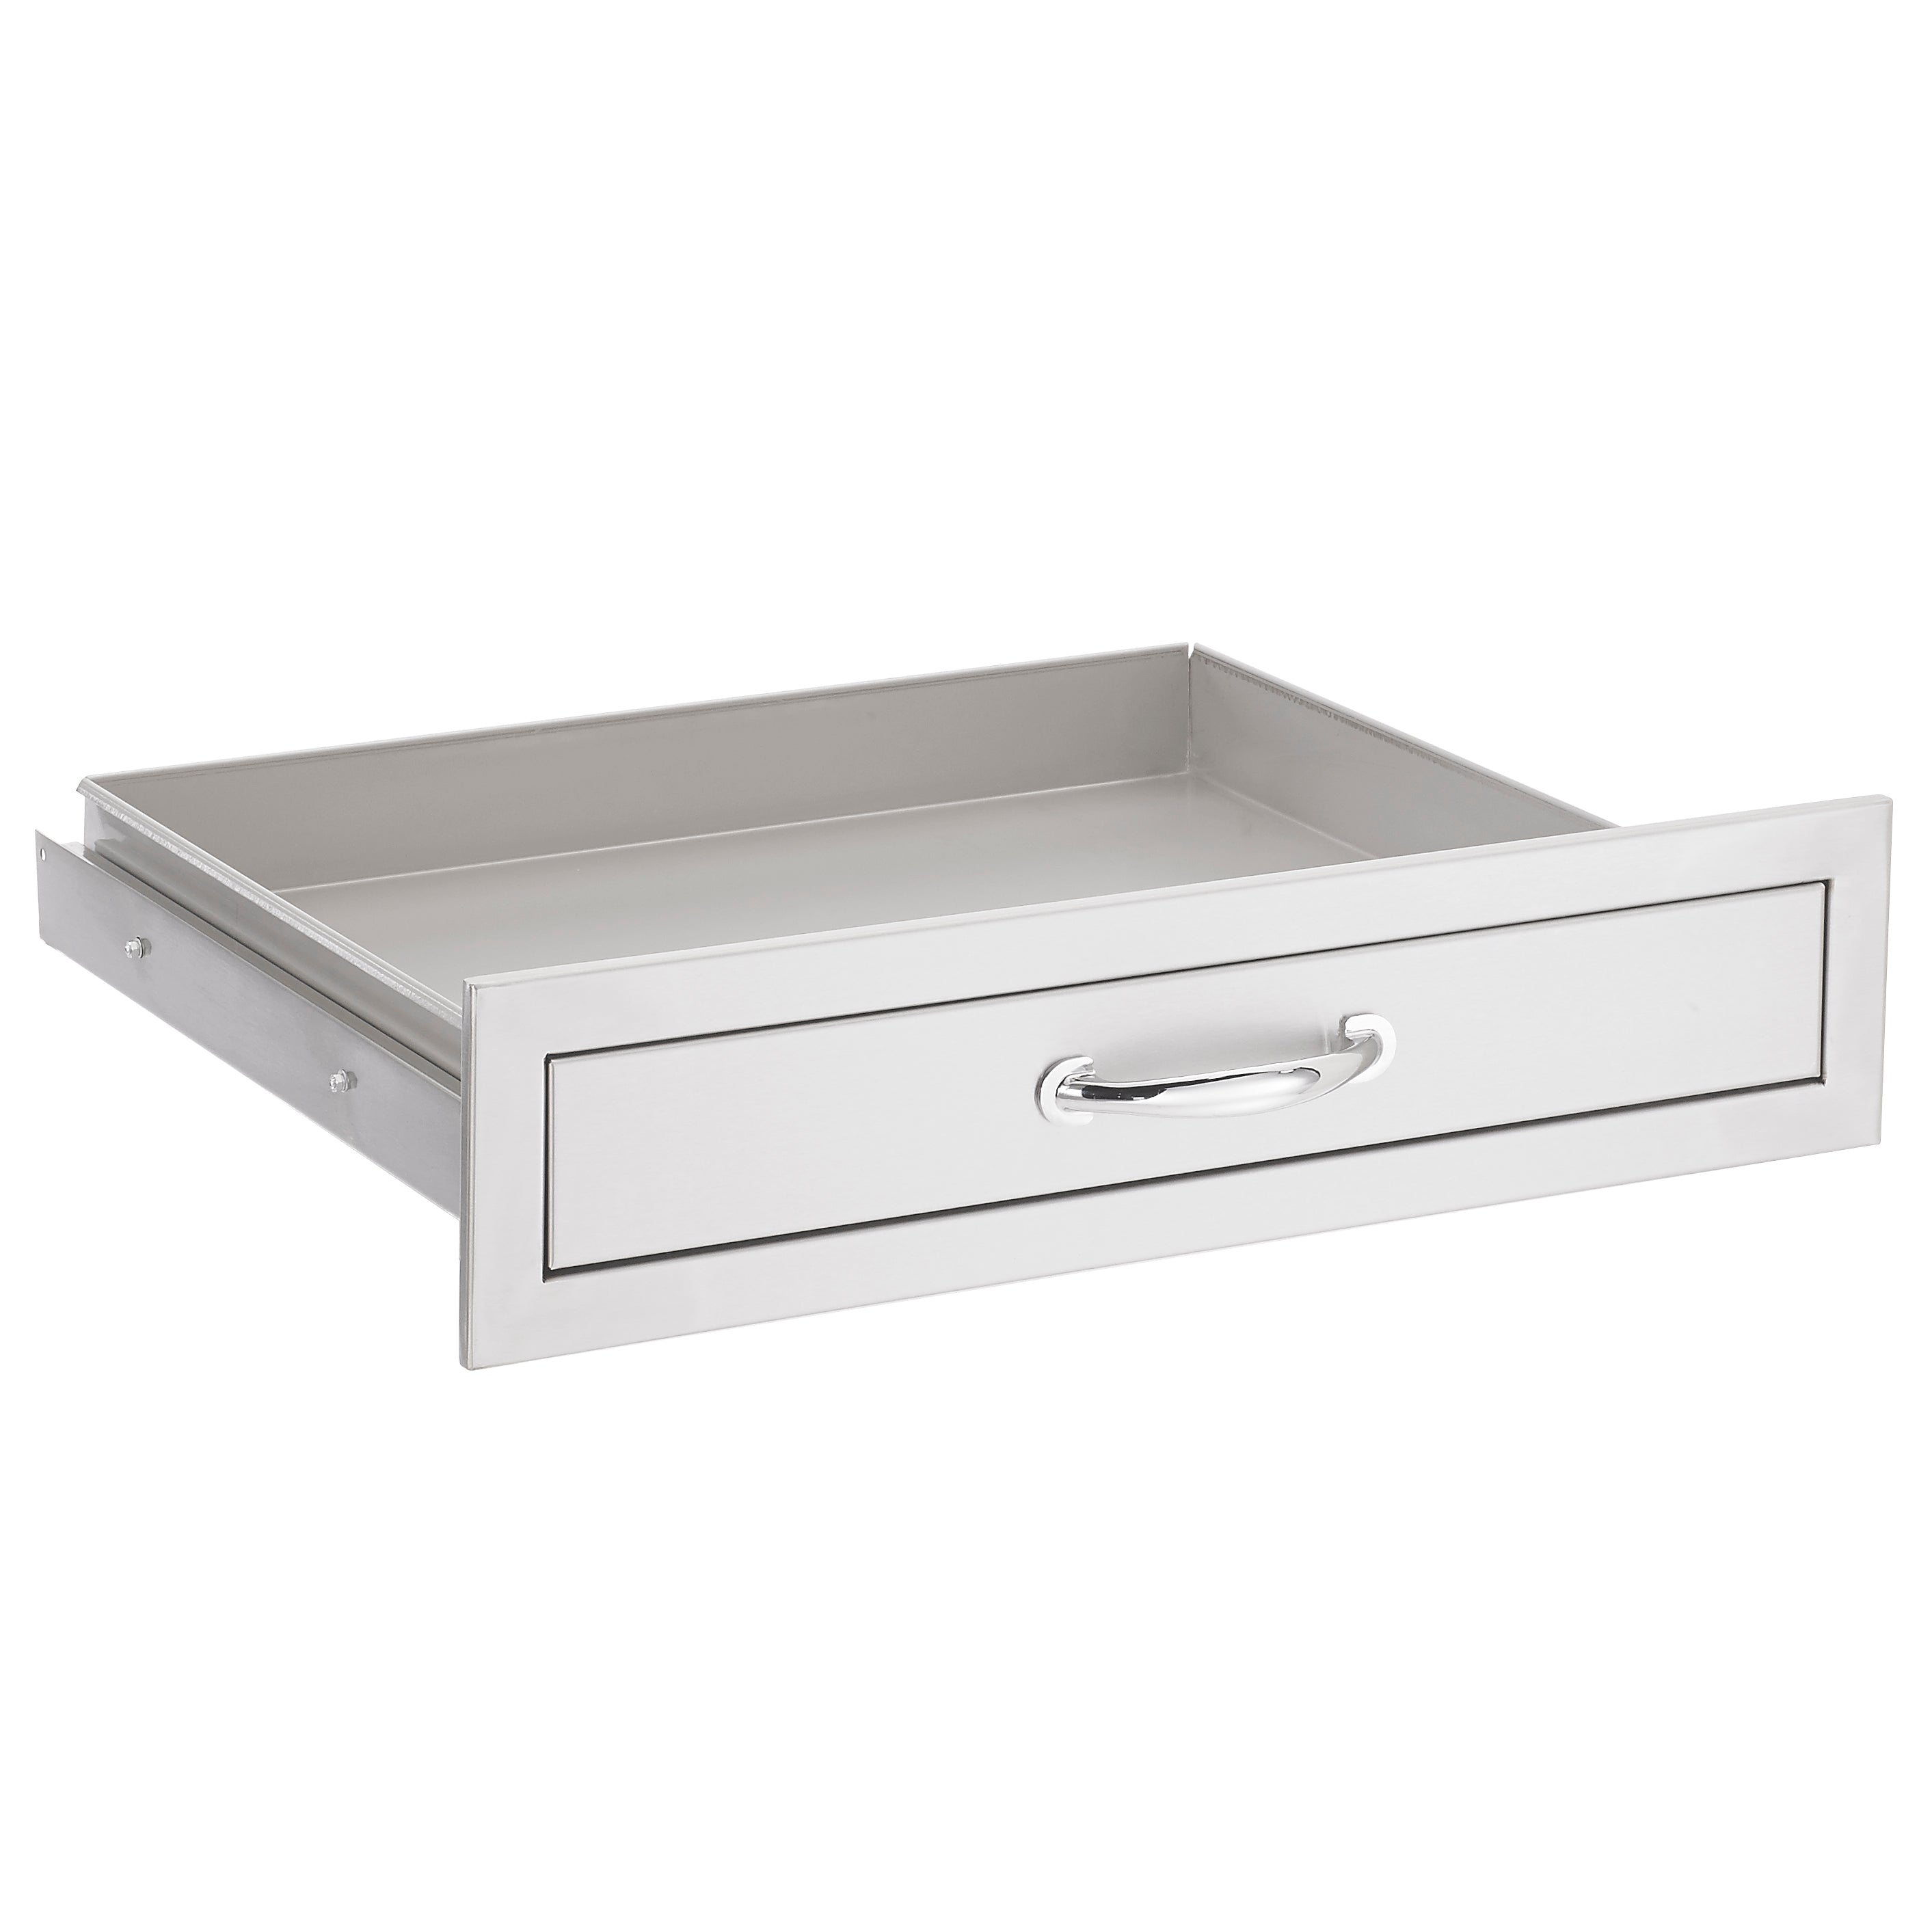 "26"" North American Stainless Steel Utensil Drawer"